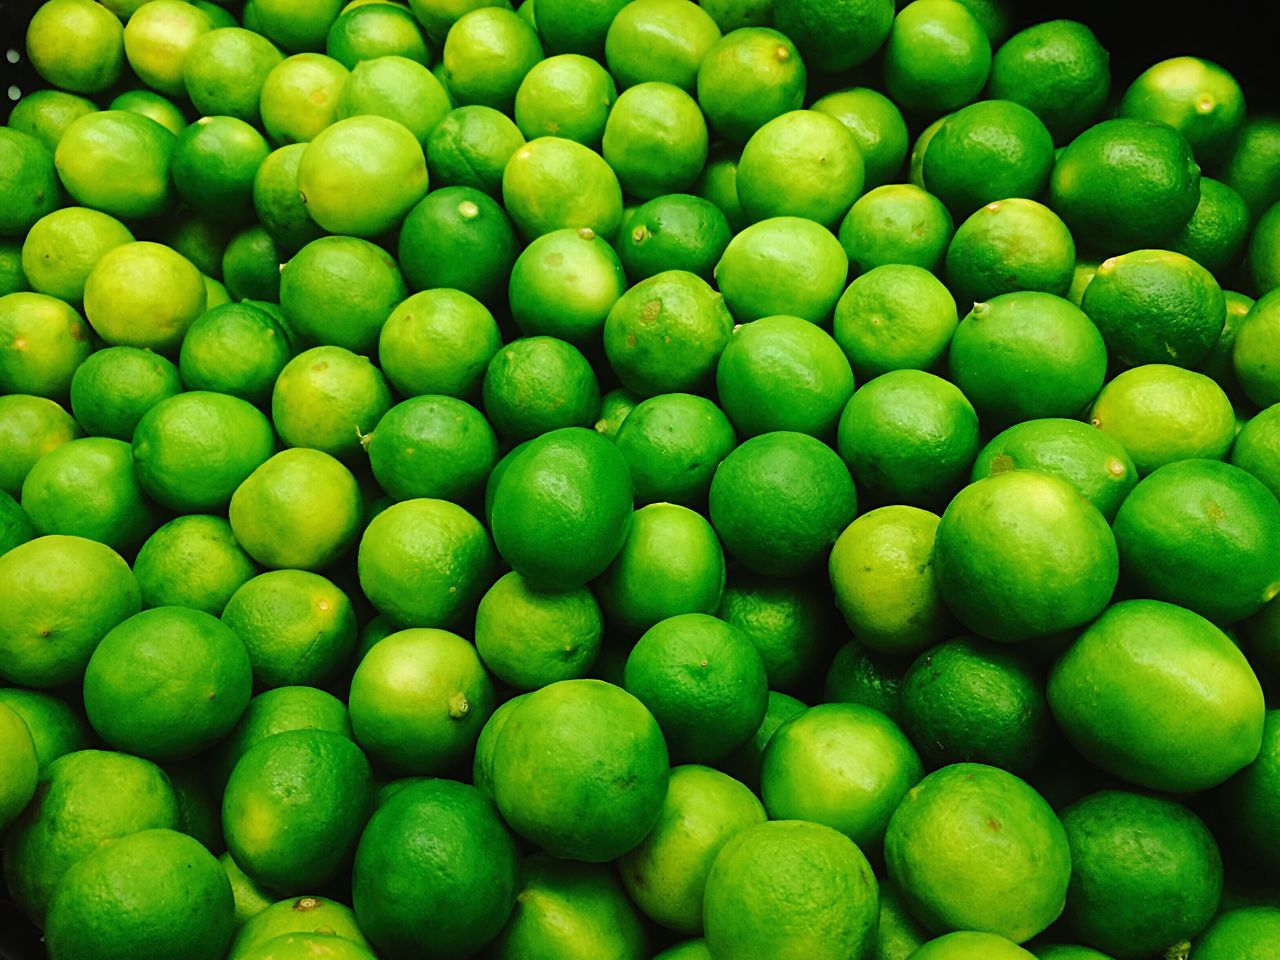 High Angle View Of Lemons At Market Stall